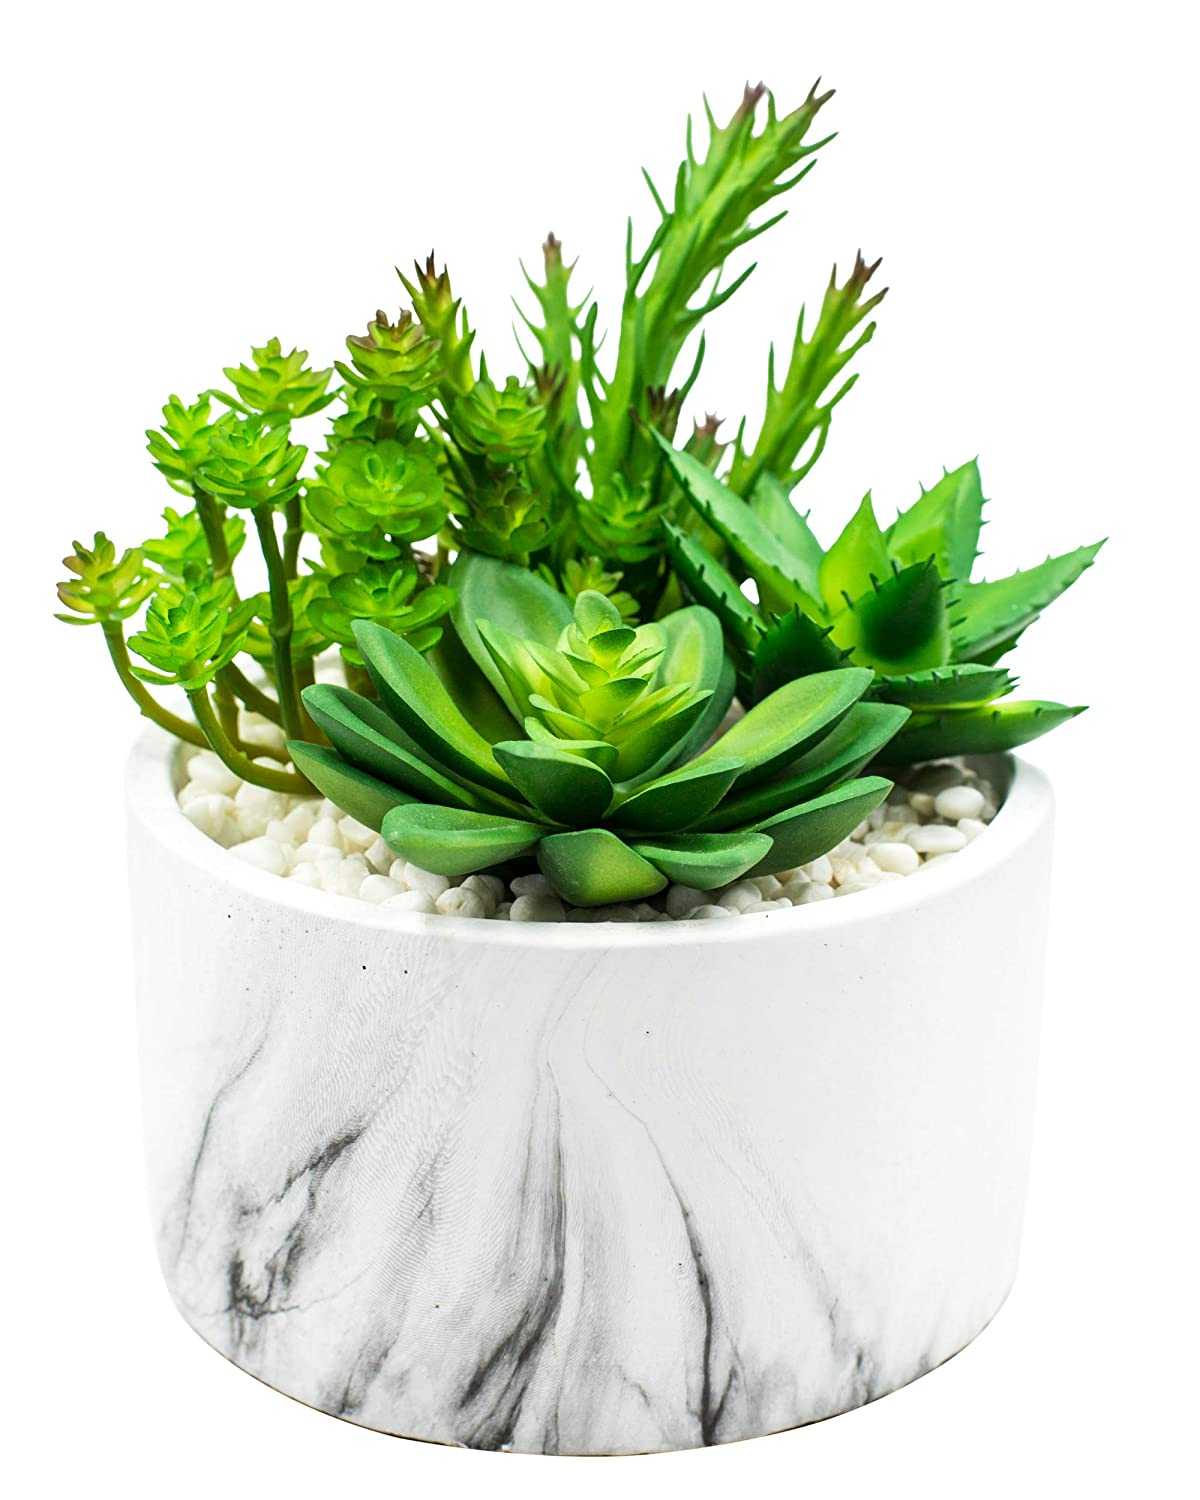 Stylish Cement Planter with Artificial Desert Plants. Premium Home Decor for Easy No-Maintenance Greenery. Hand Crafted Marble Look for High End Appearance. Fake Cactus in Attractive Marble Pot (1)